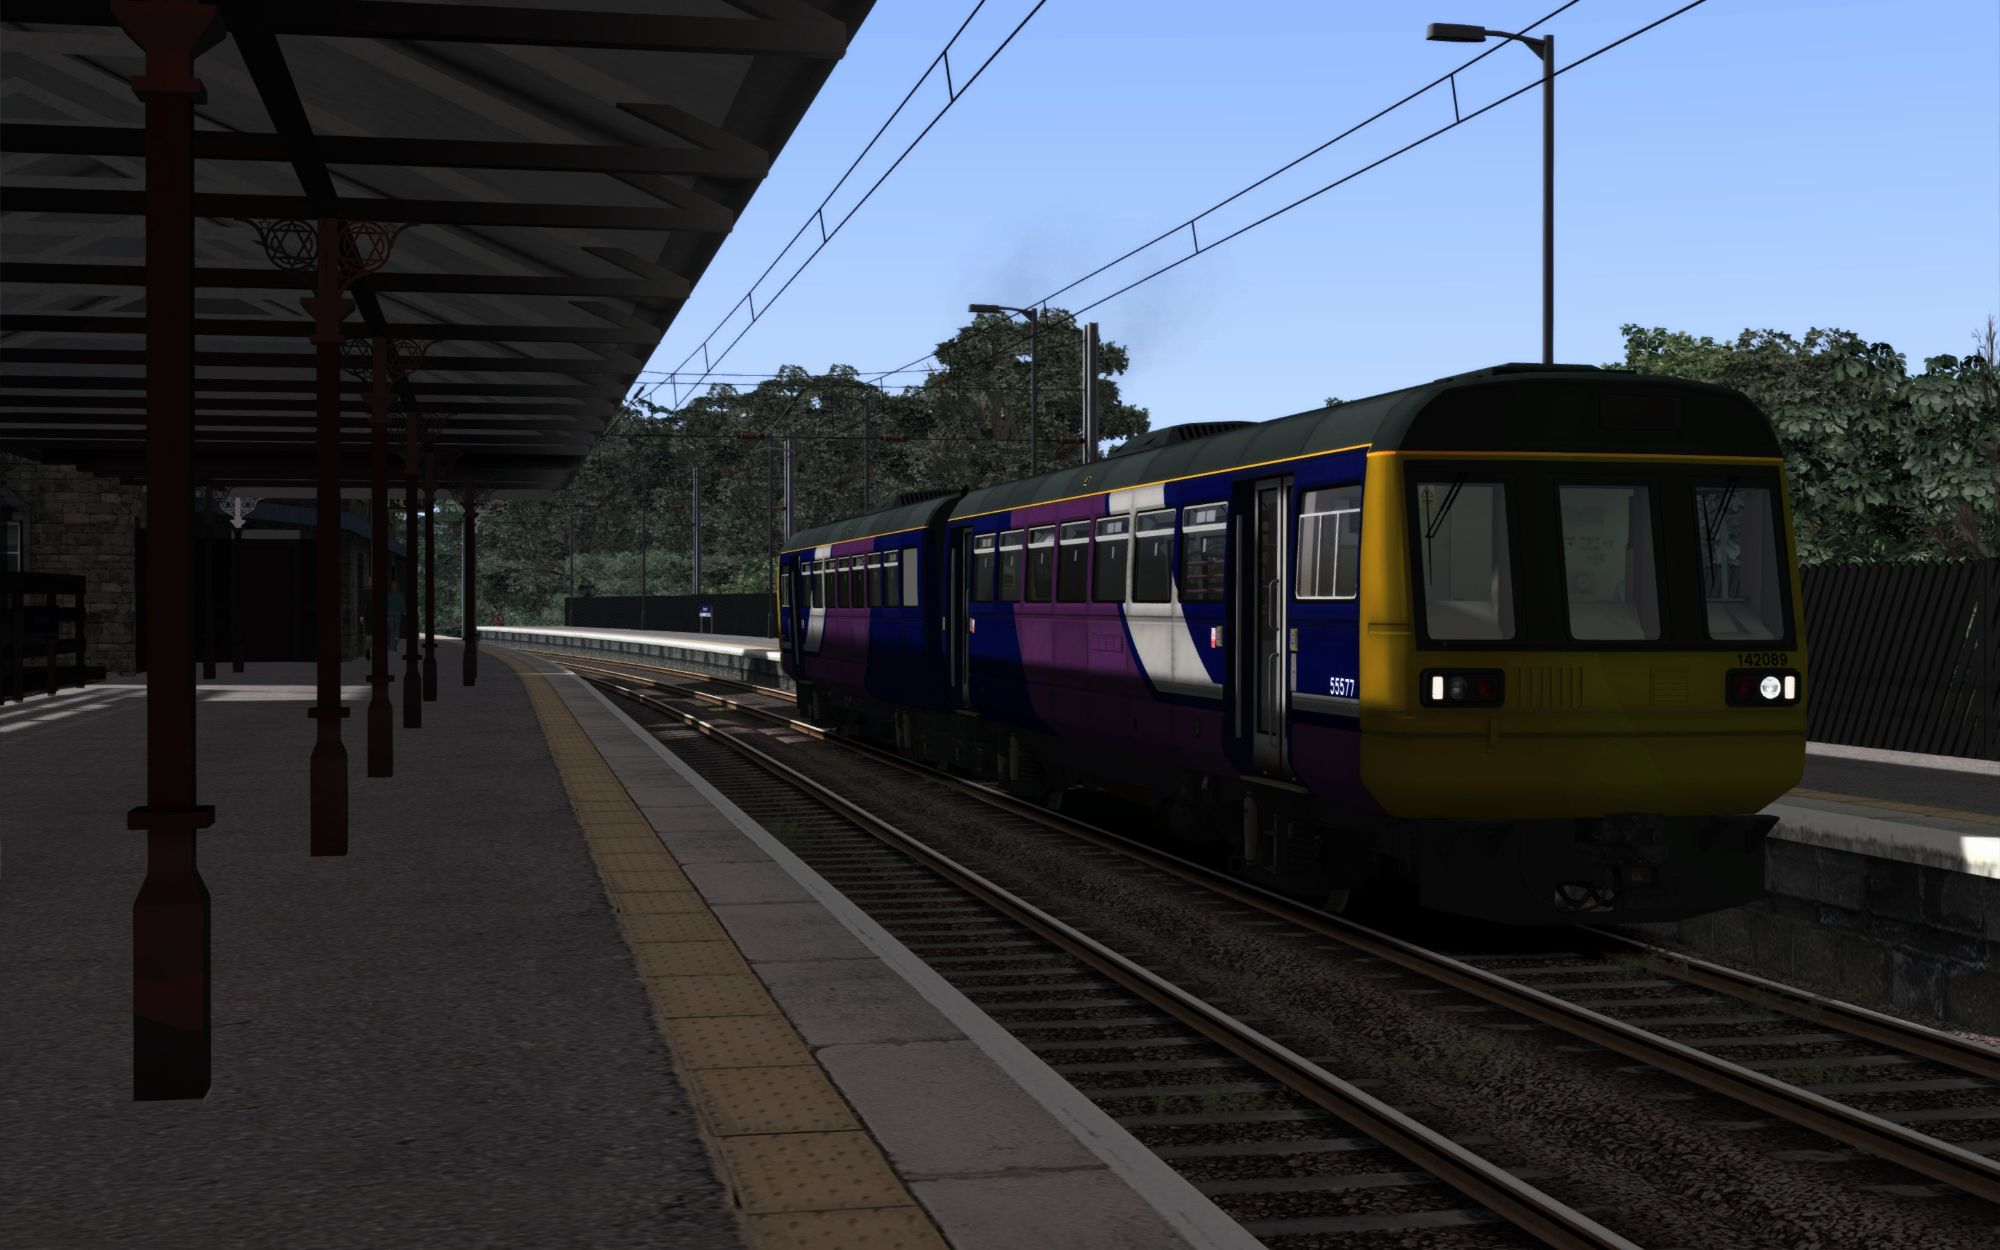 Image showing screenshot of the 2A16 - 1152 Carlisle to Morpeth scenario